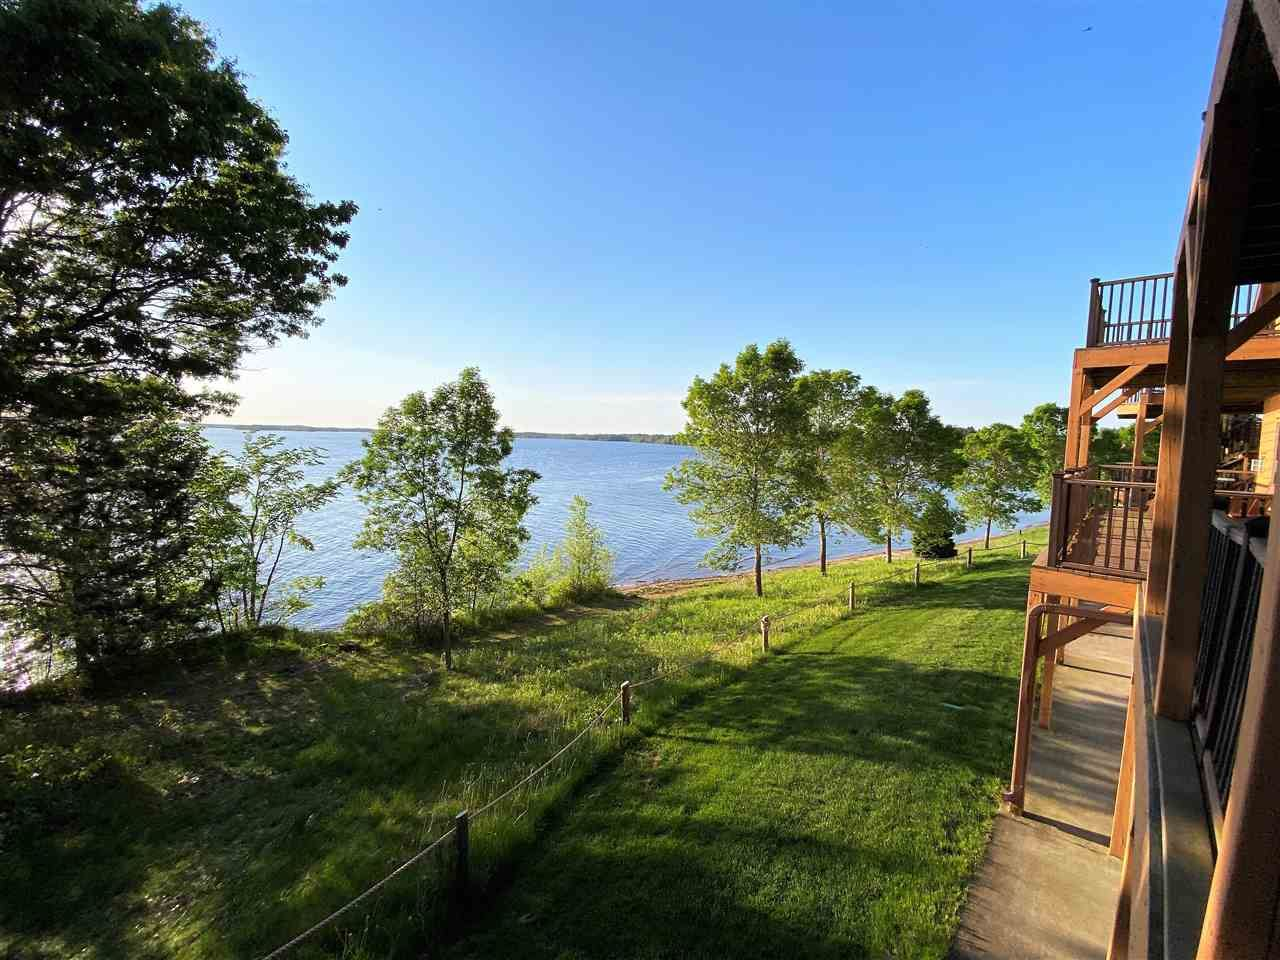 1837-4 20th Ct #2004, Arkdale, WI 54613 - #: 1884726